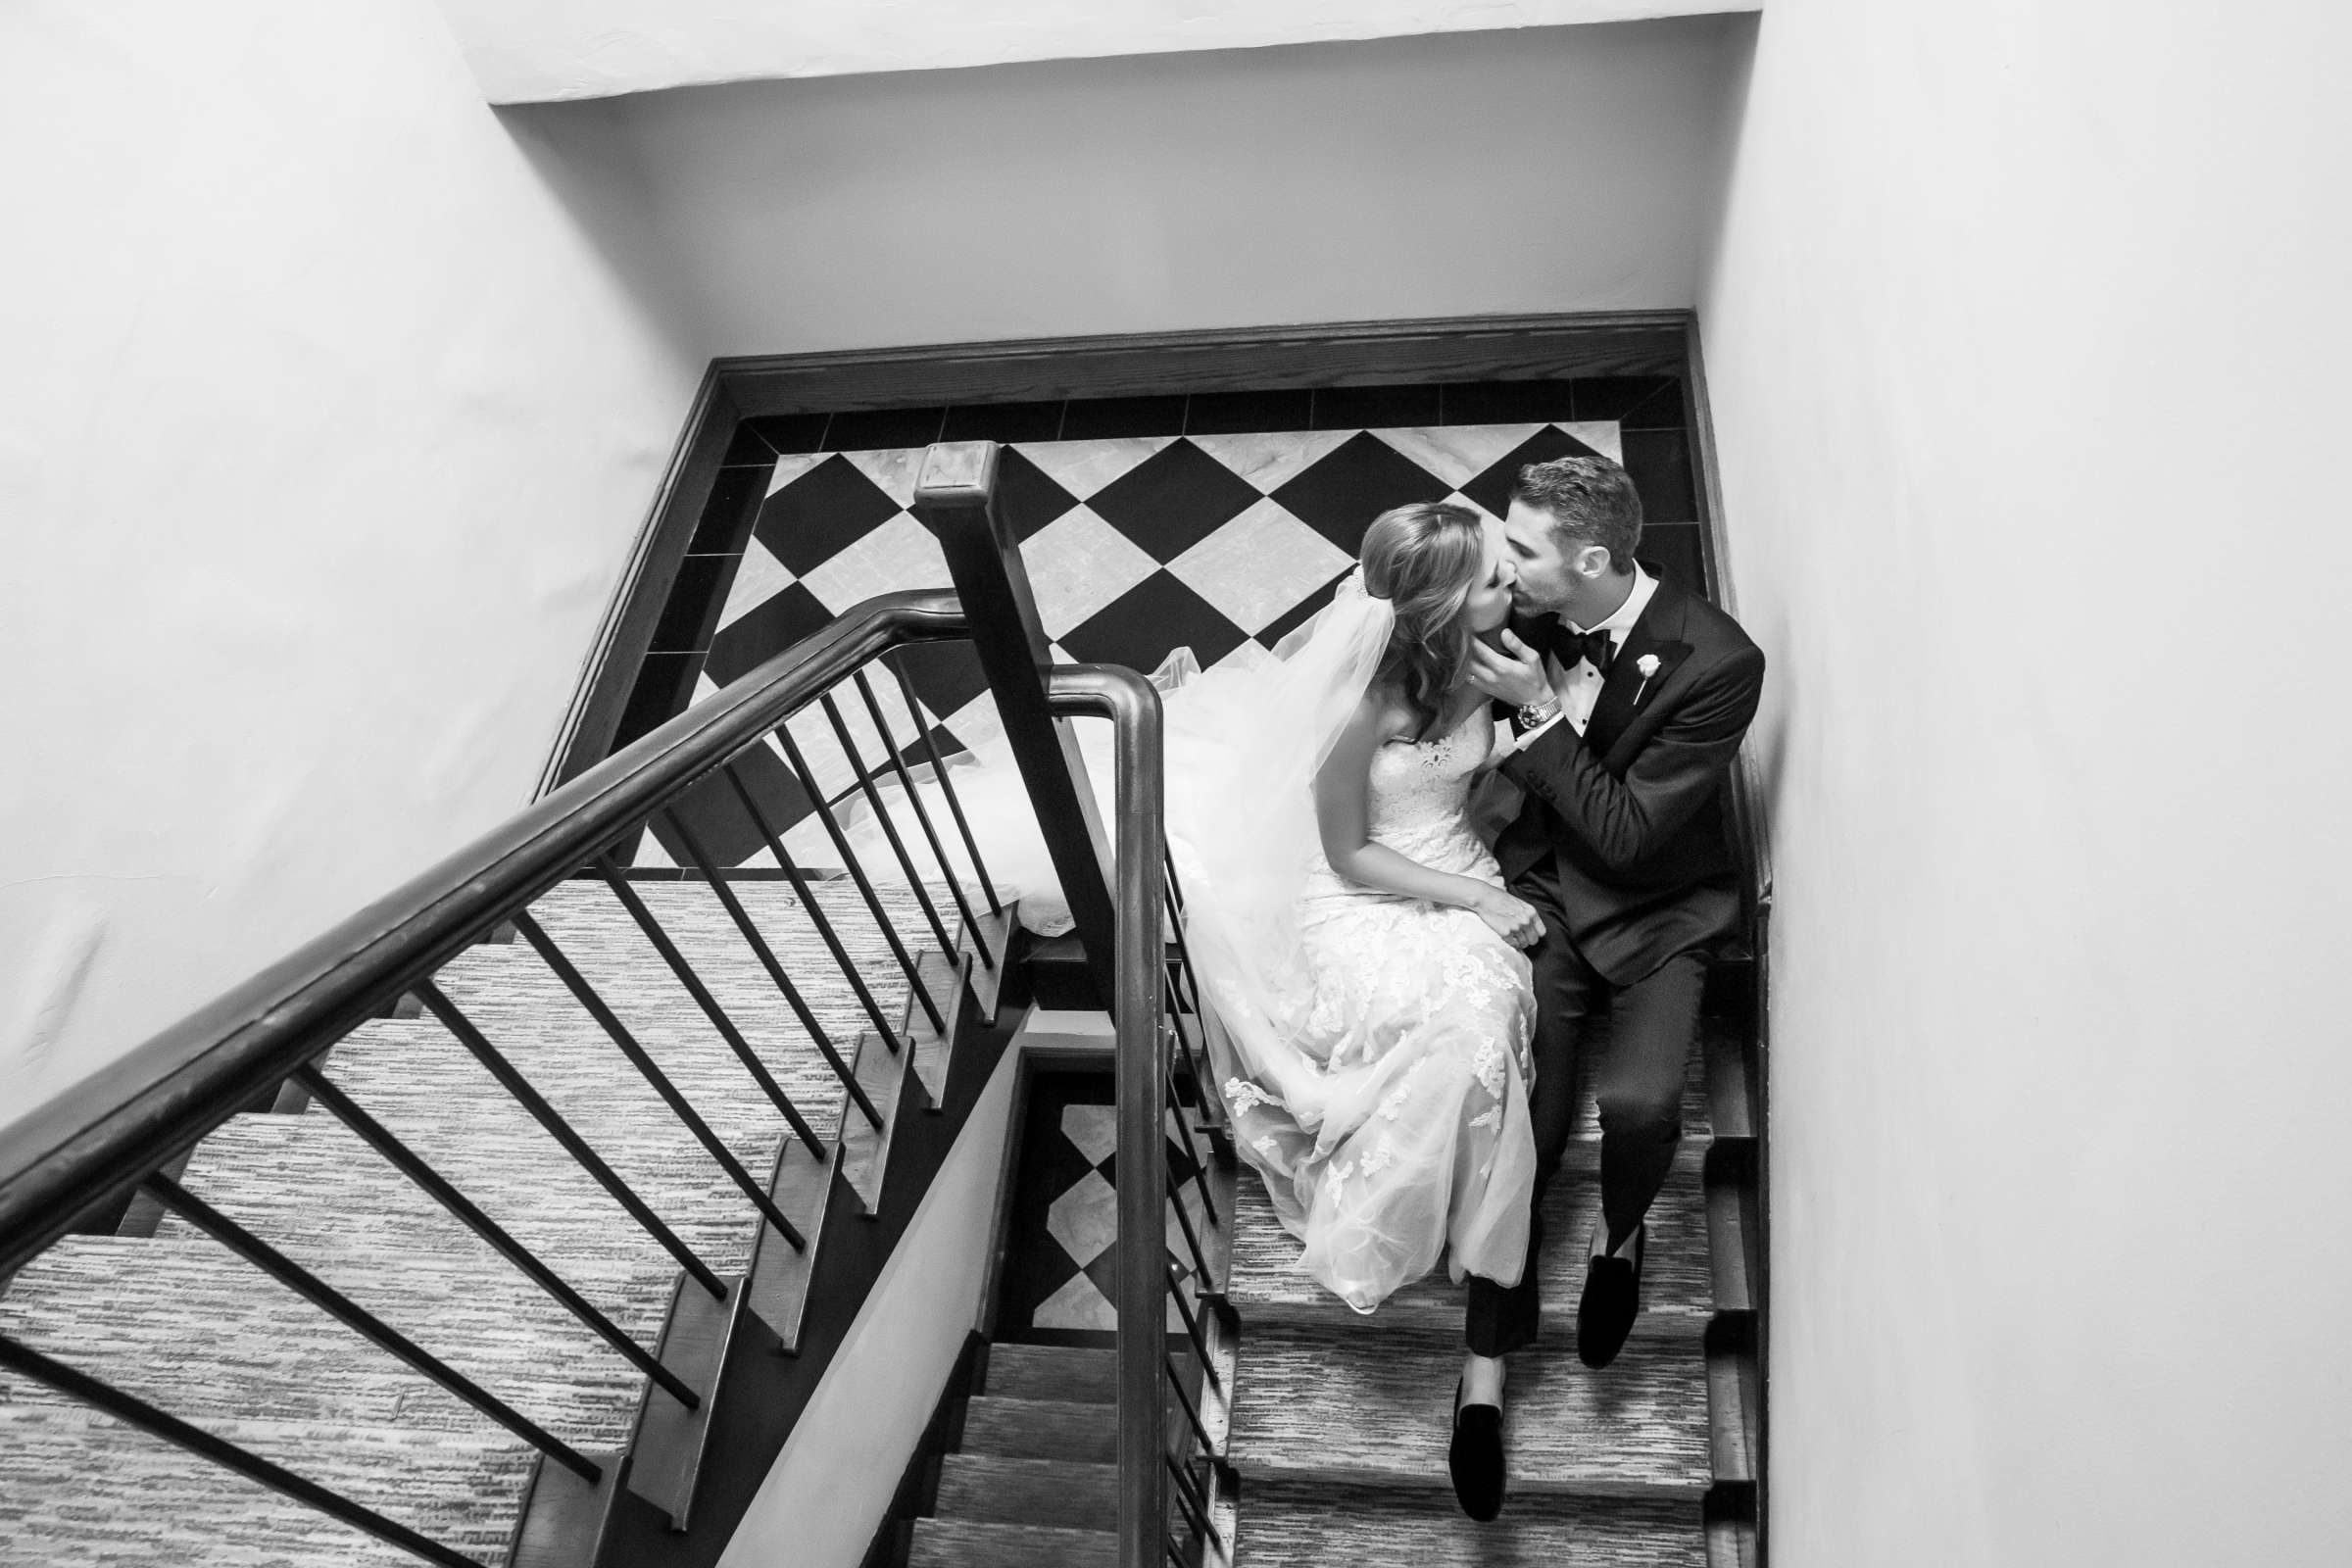 La Valencia Wedding, Lucia and Marcelo Wedding Photo #256643 by True Photography